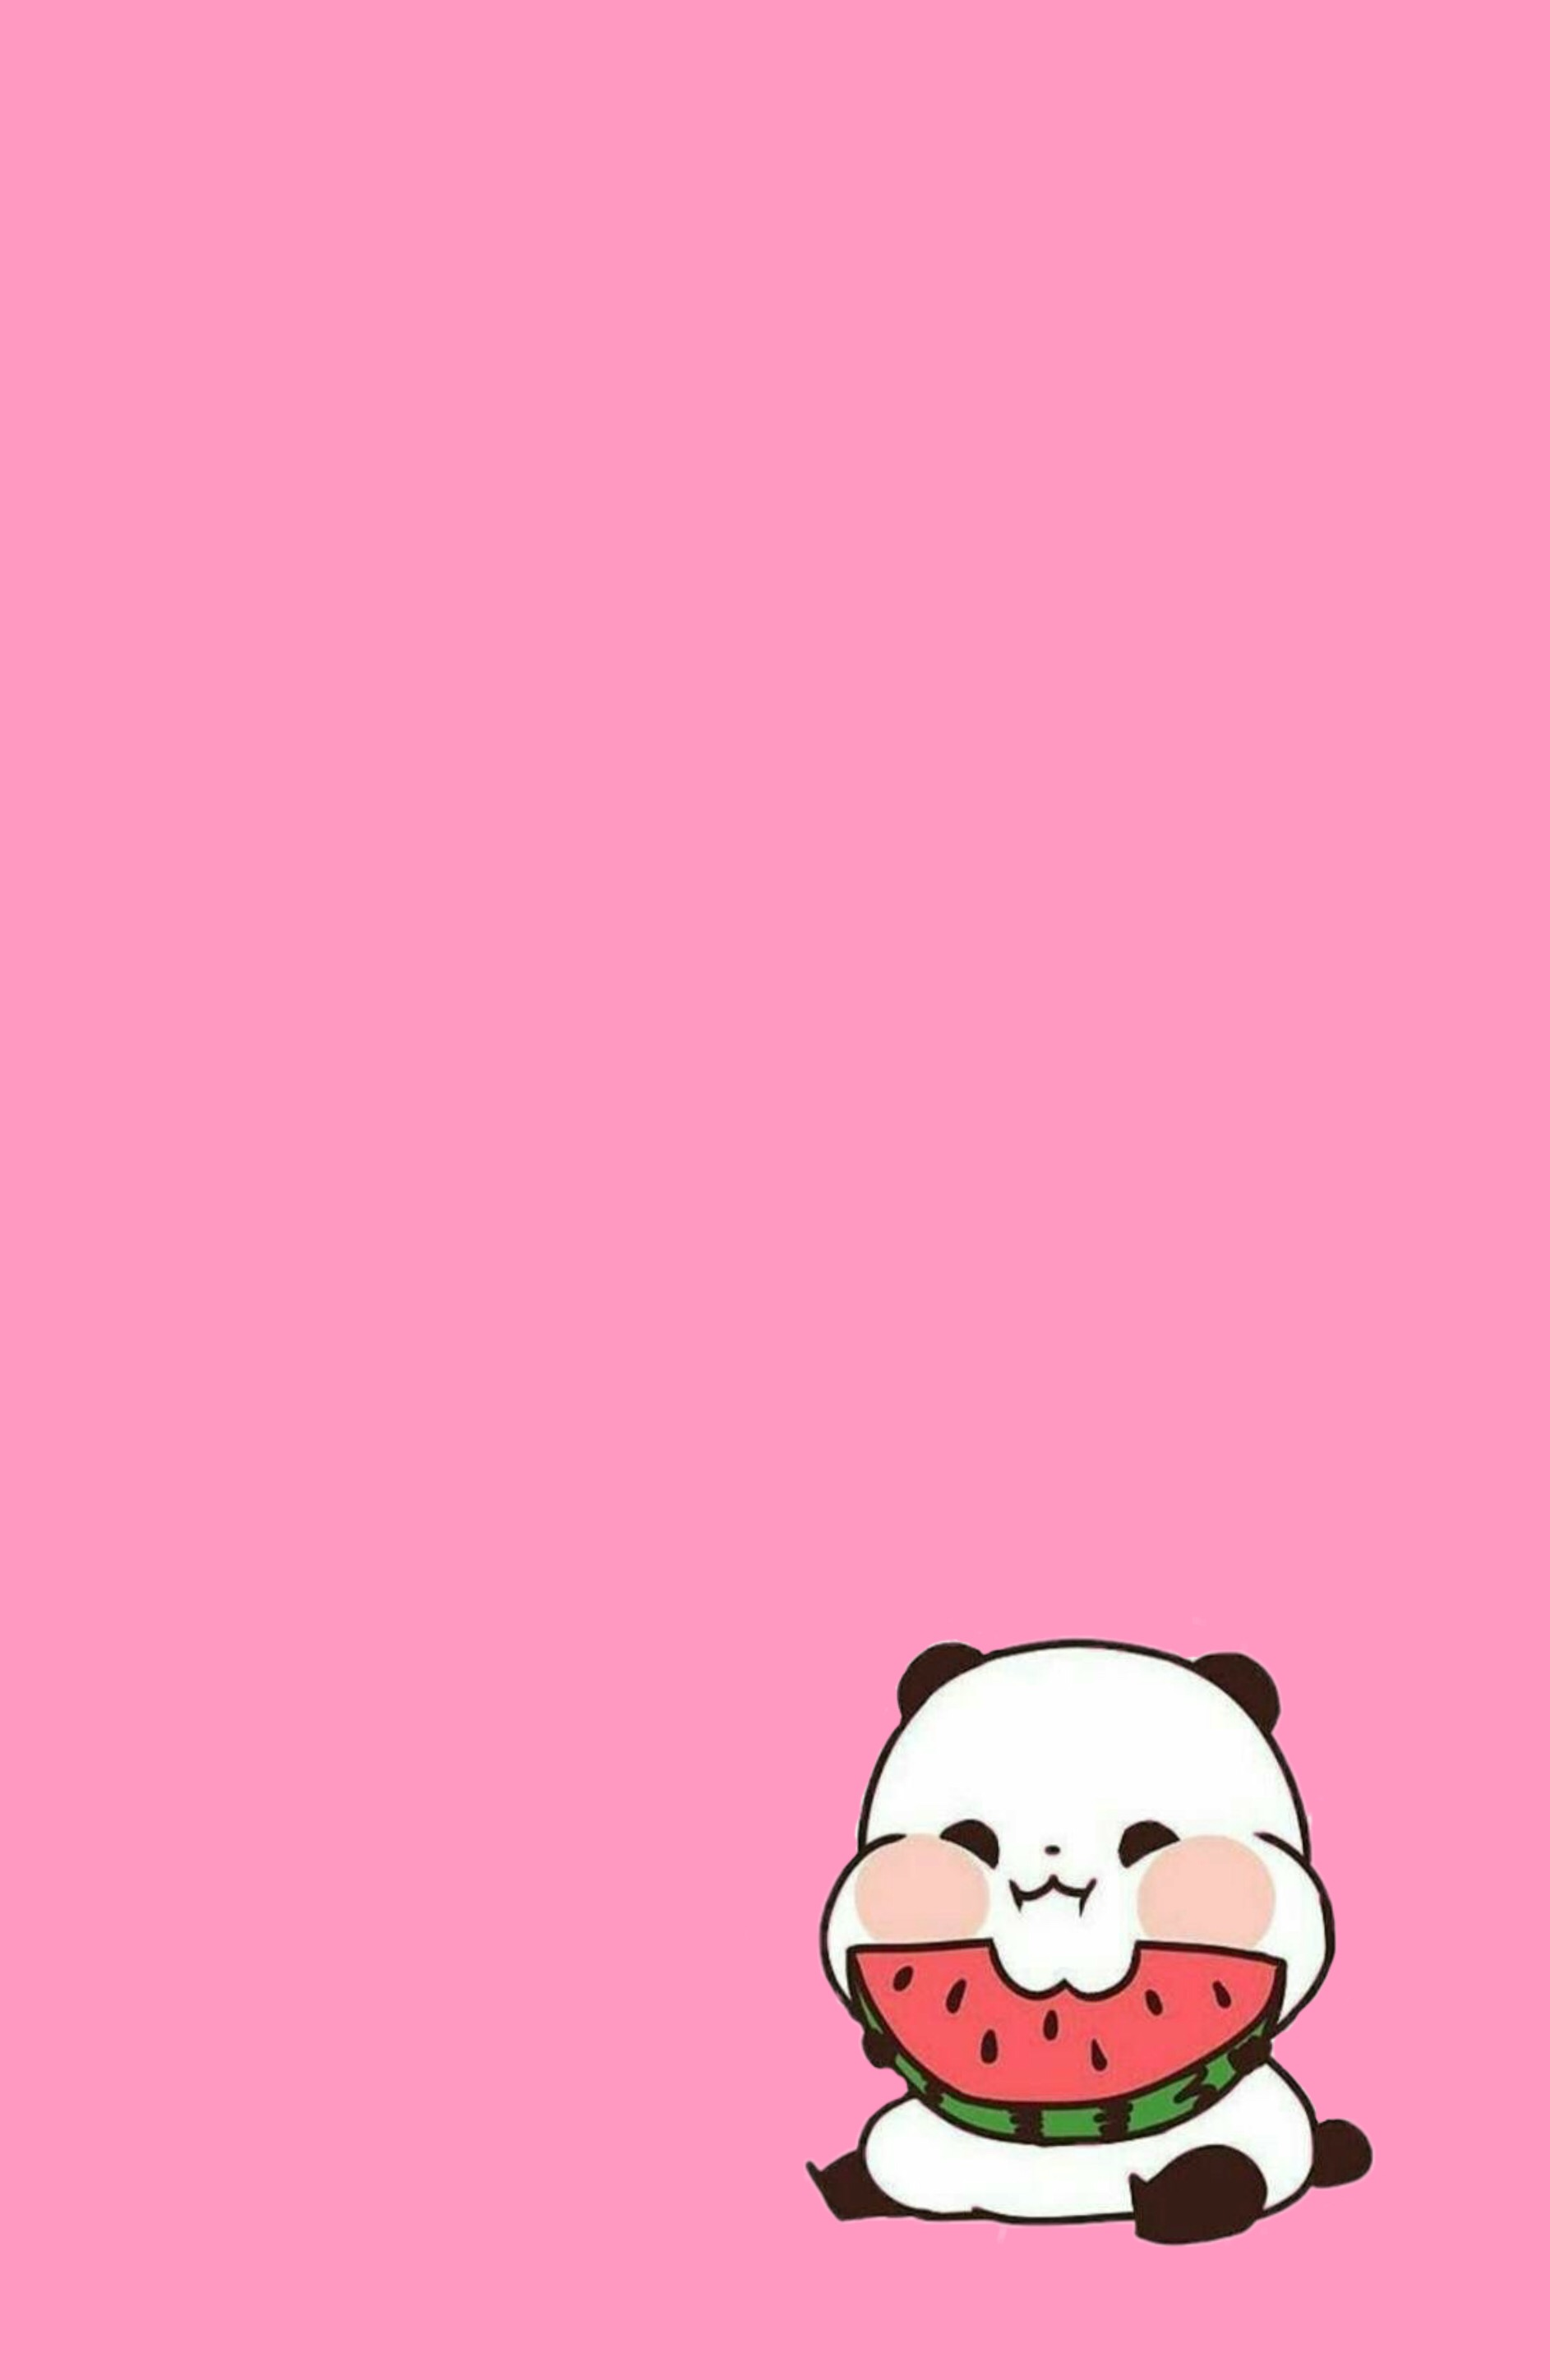 wallpapers heres a cute panda eating a watermelon with